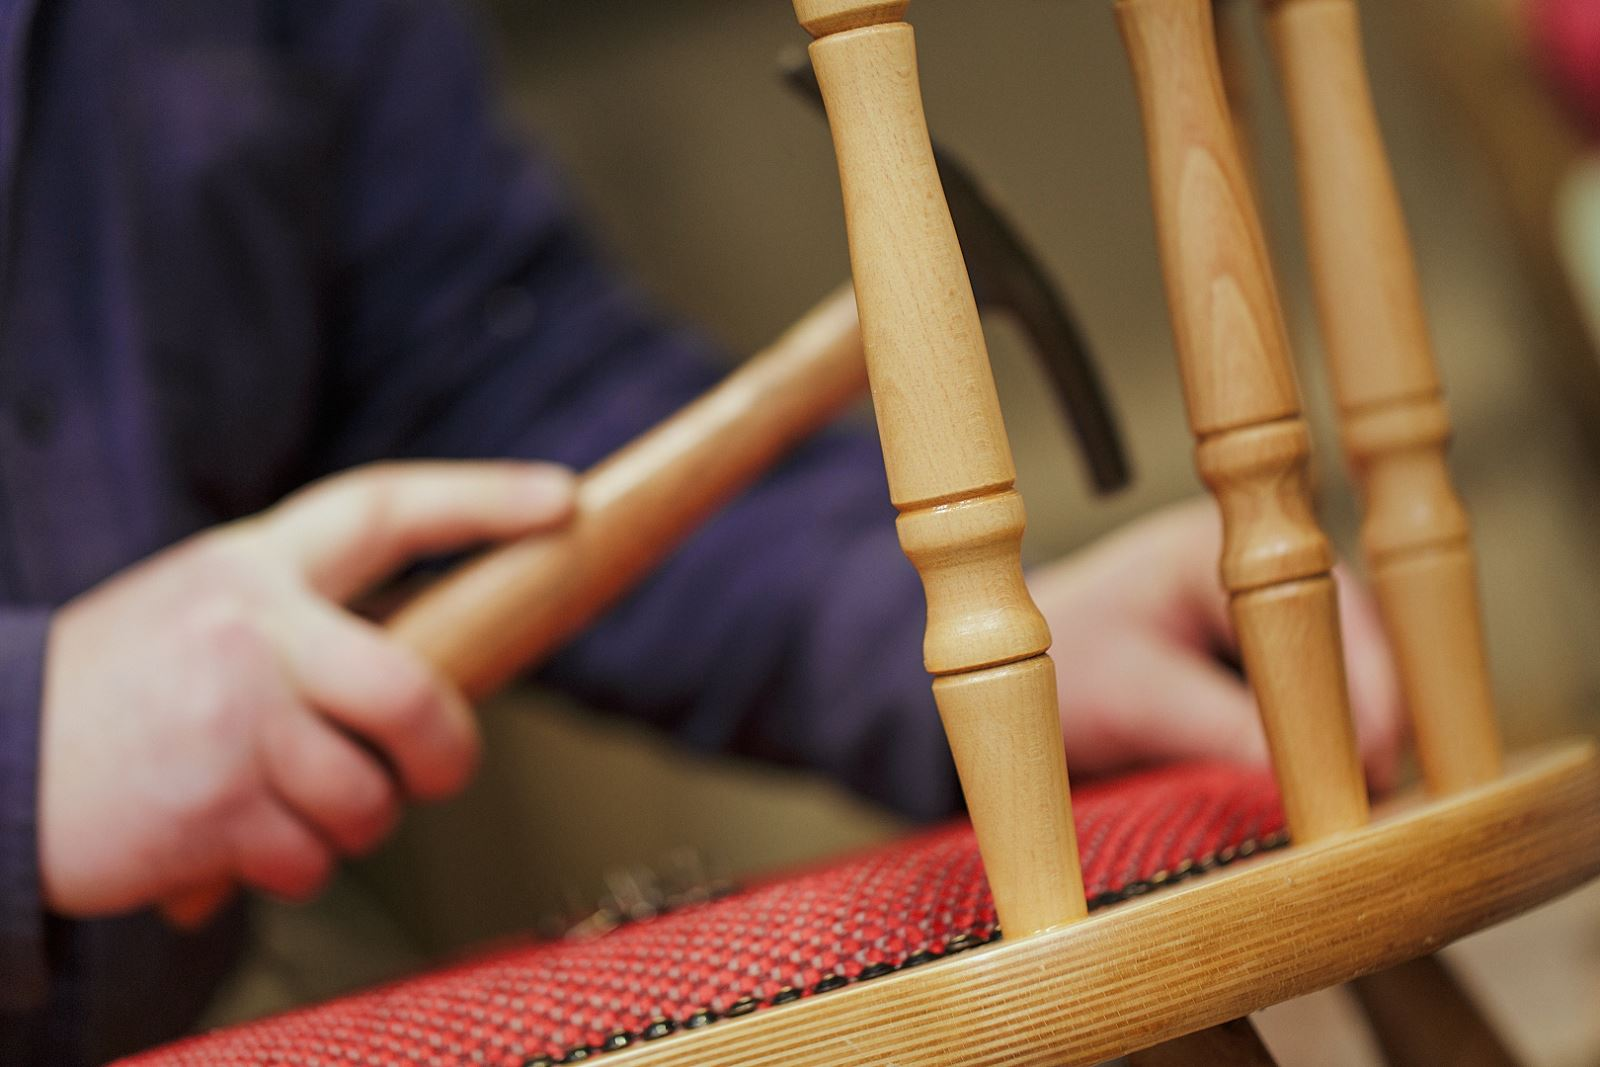 Expert building and finishing a wooden chair